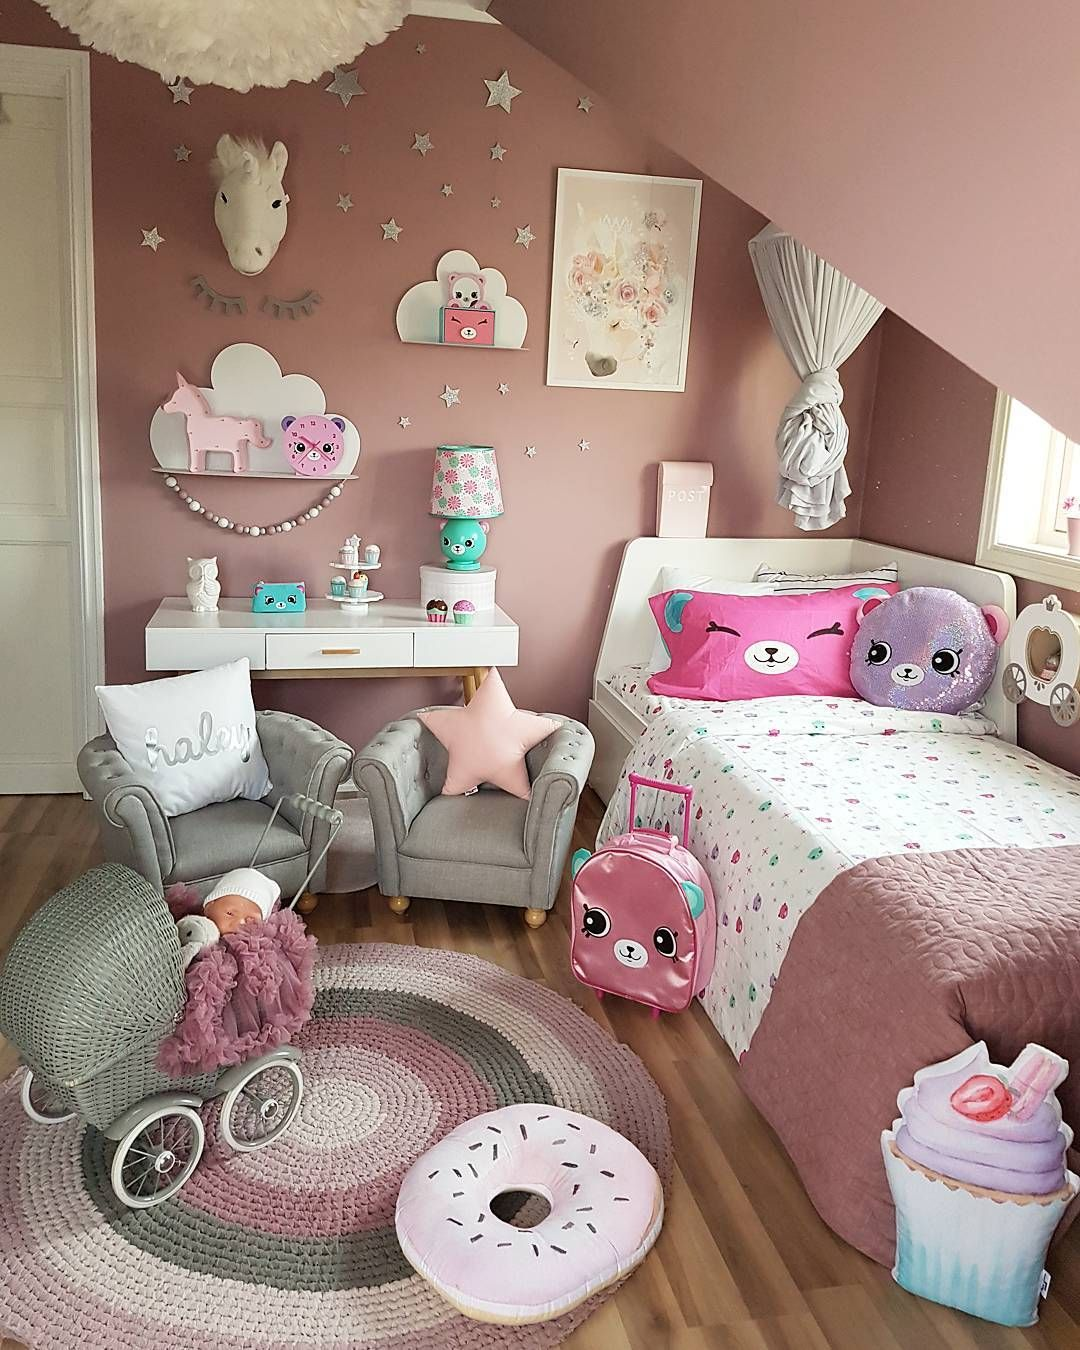 Top 16 DIY Bedroom Decoration Ideas - Sensod - Create. Connect. Brand. images